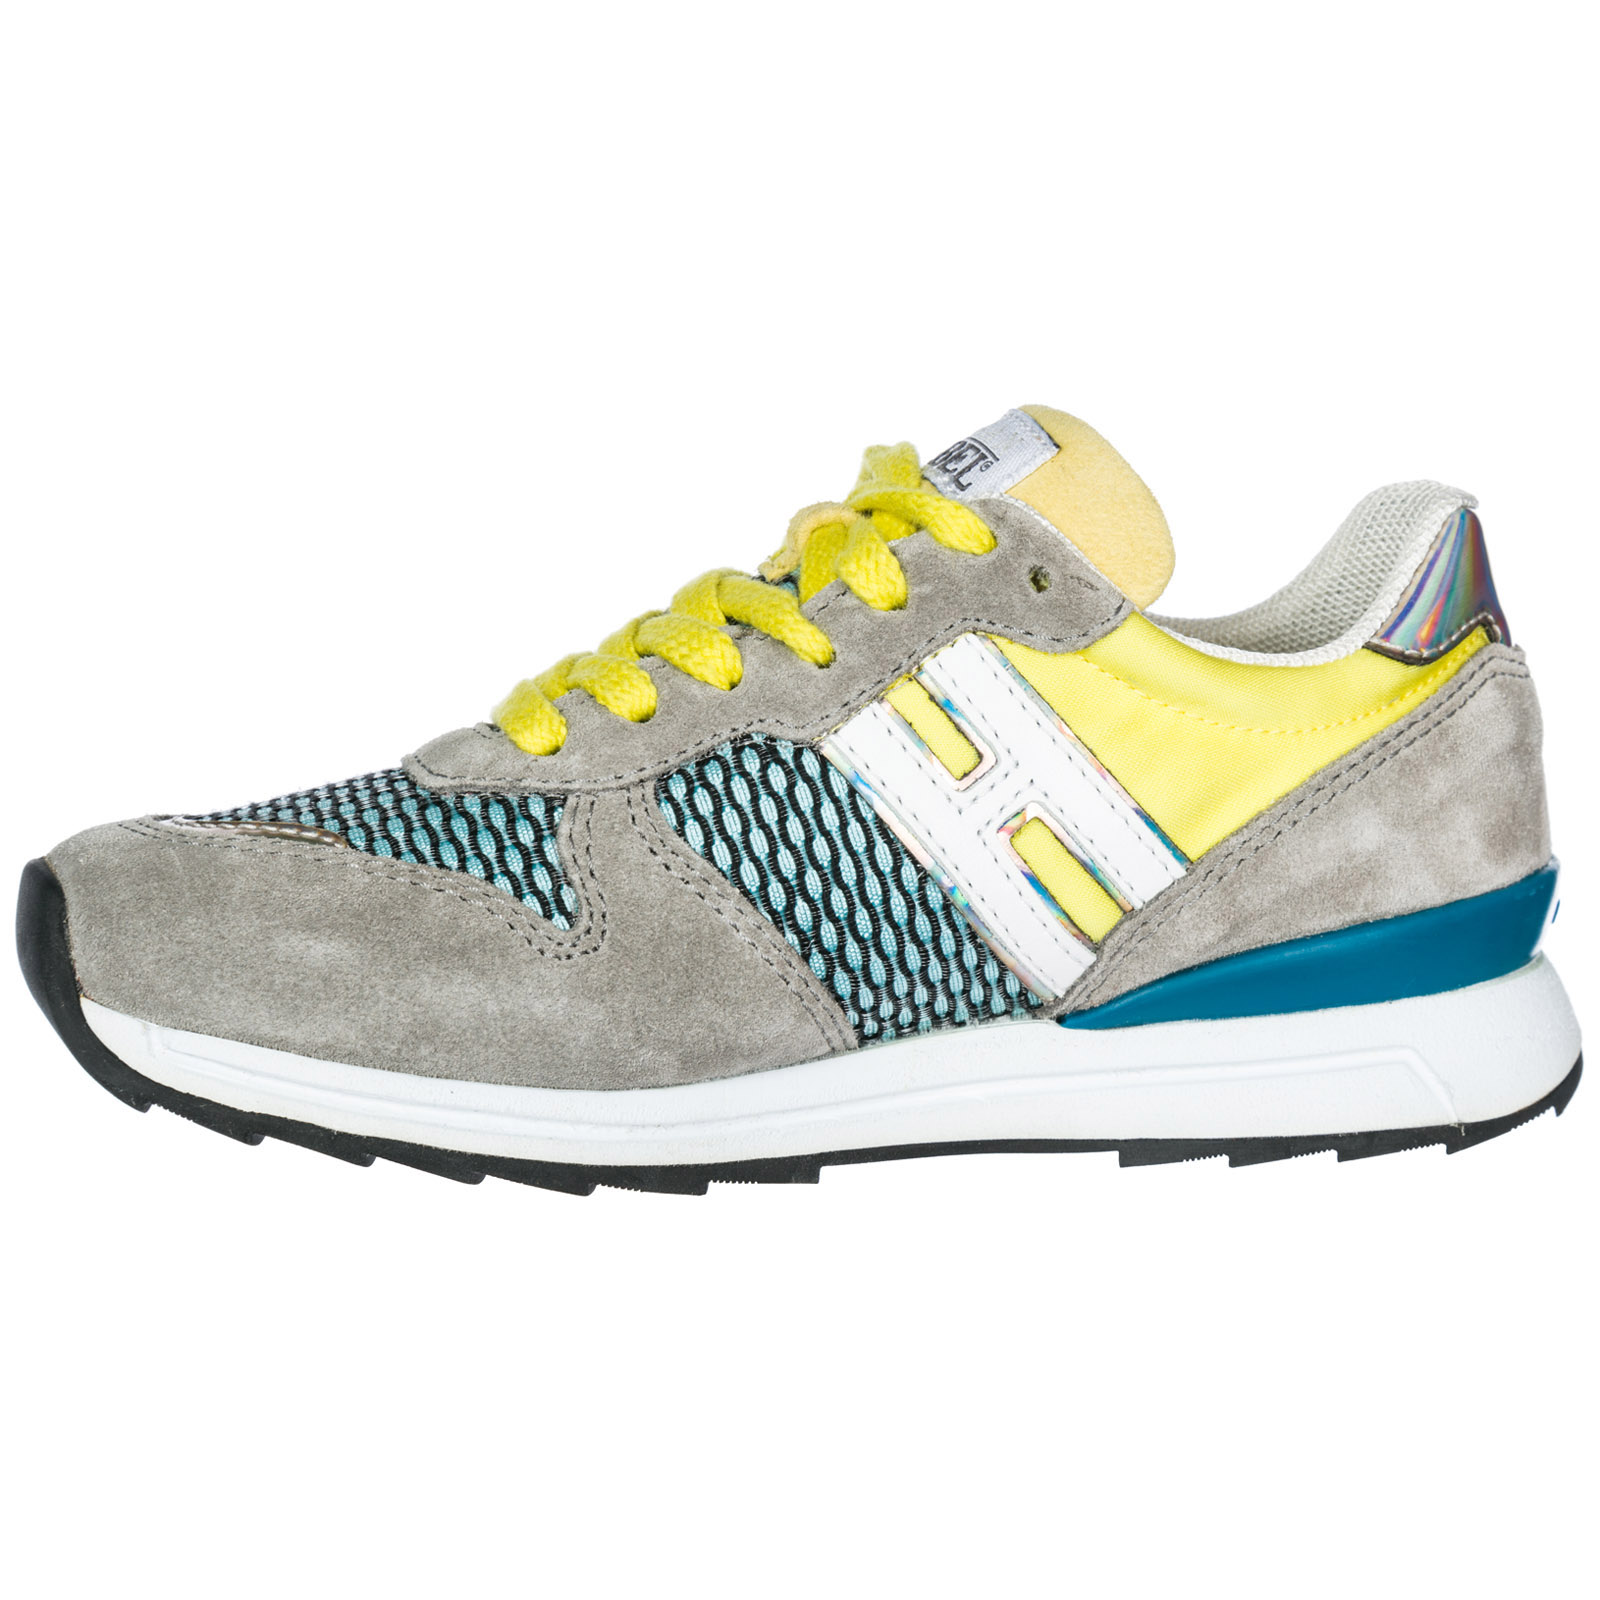 Sneakers Hogan Rebel Running - R261 HXC2610Q9008TV370U grigio ... fddf39a5f70